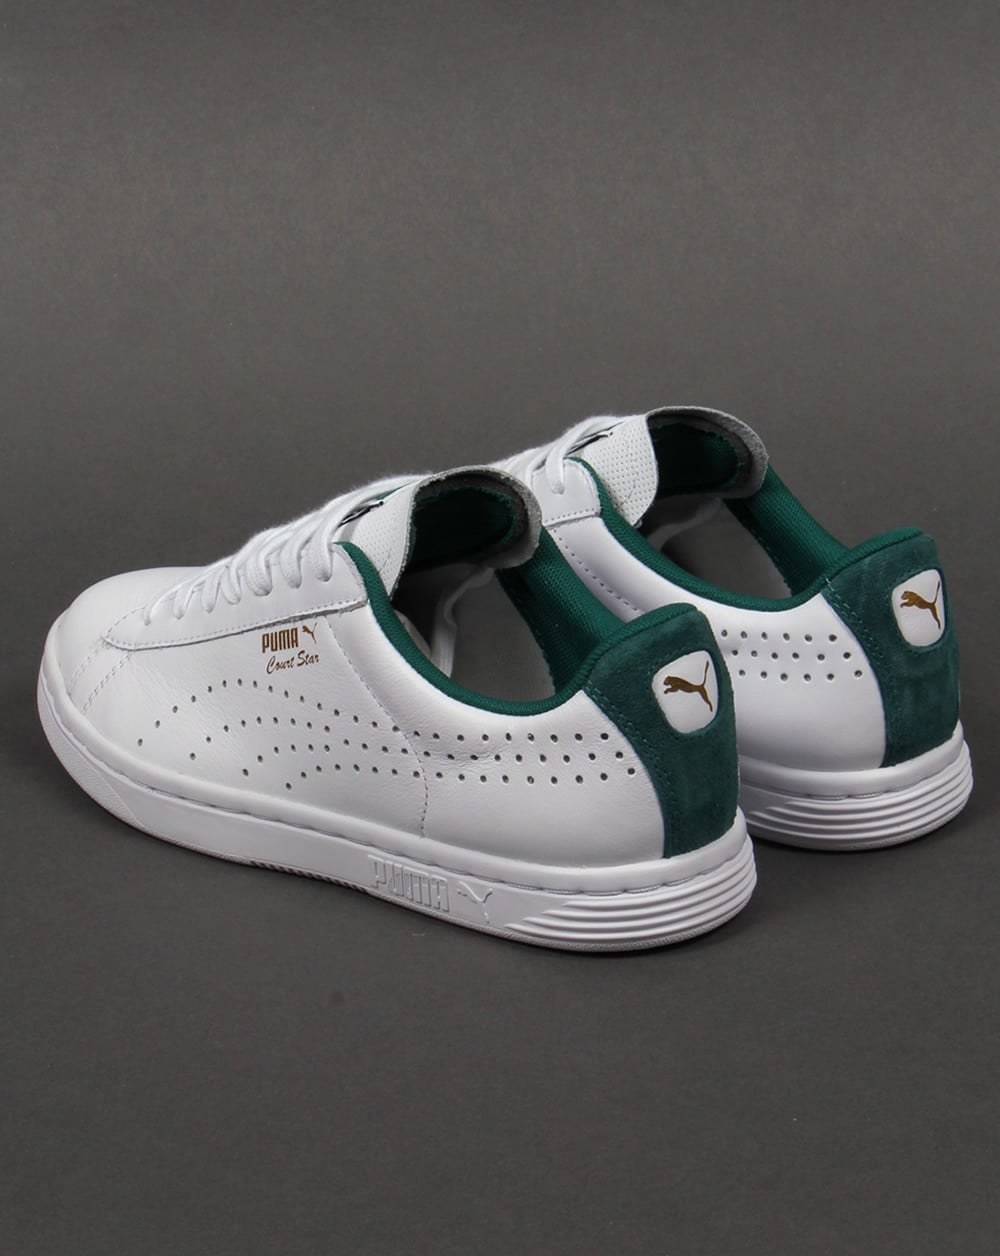 563eb91ce8a Puma Court Star Crafted Trainers White Green - Trainers from 80s ...